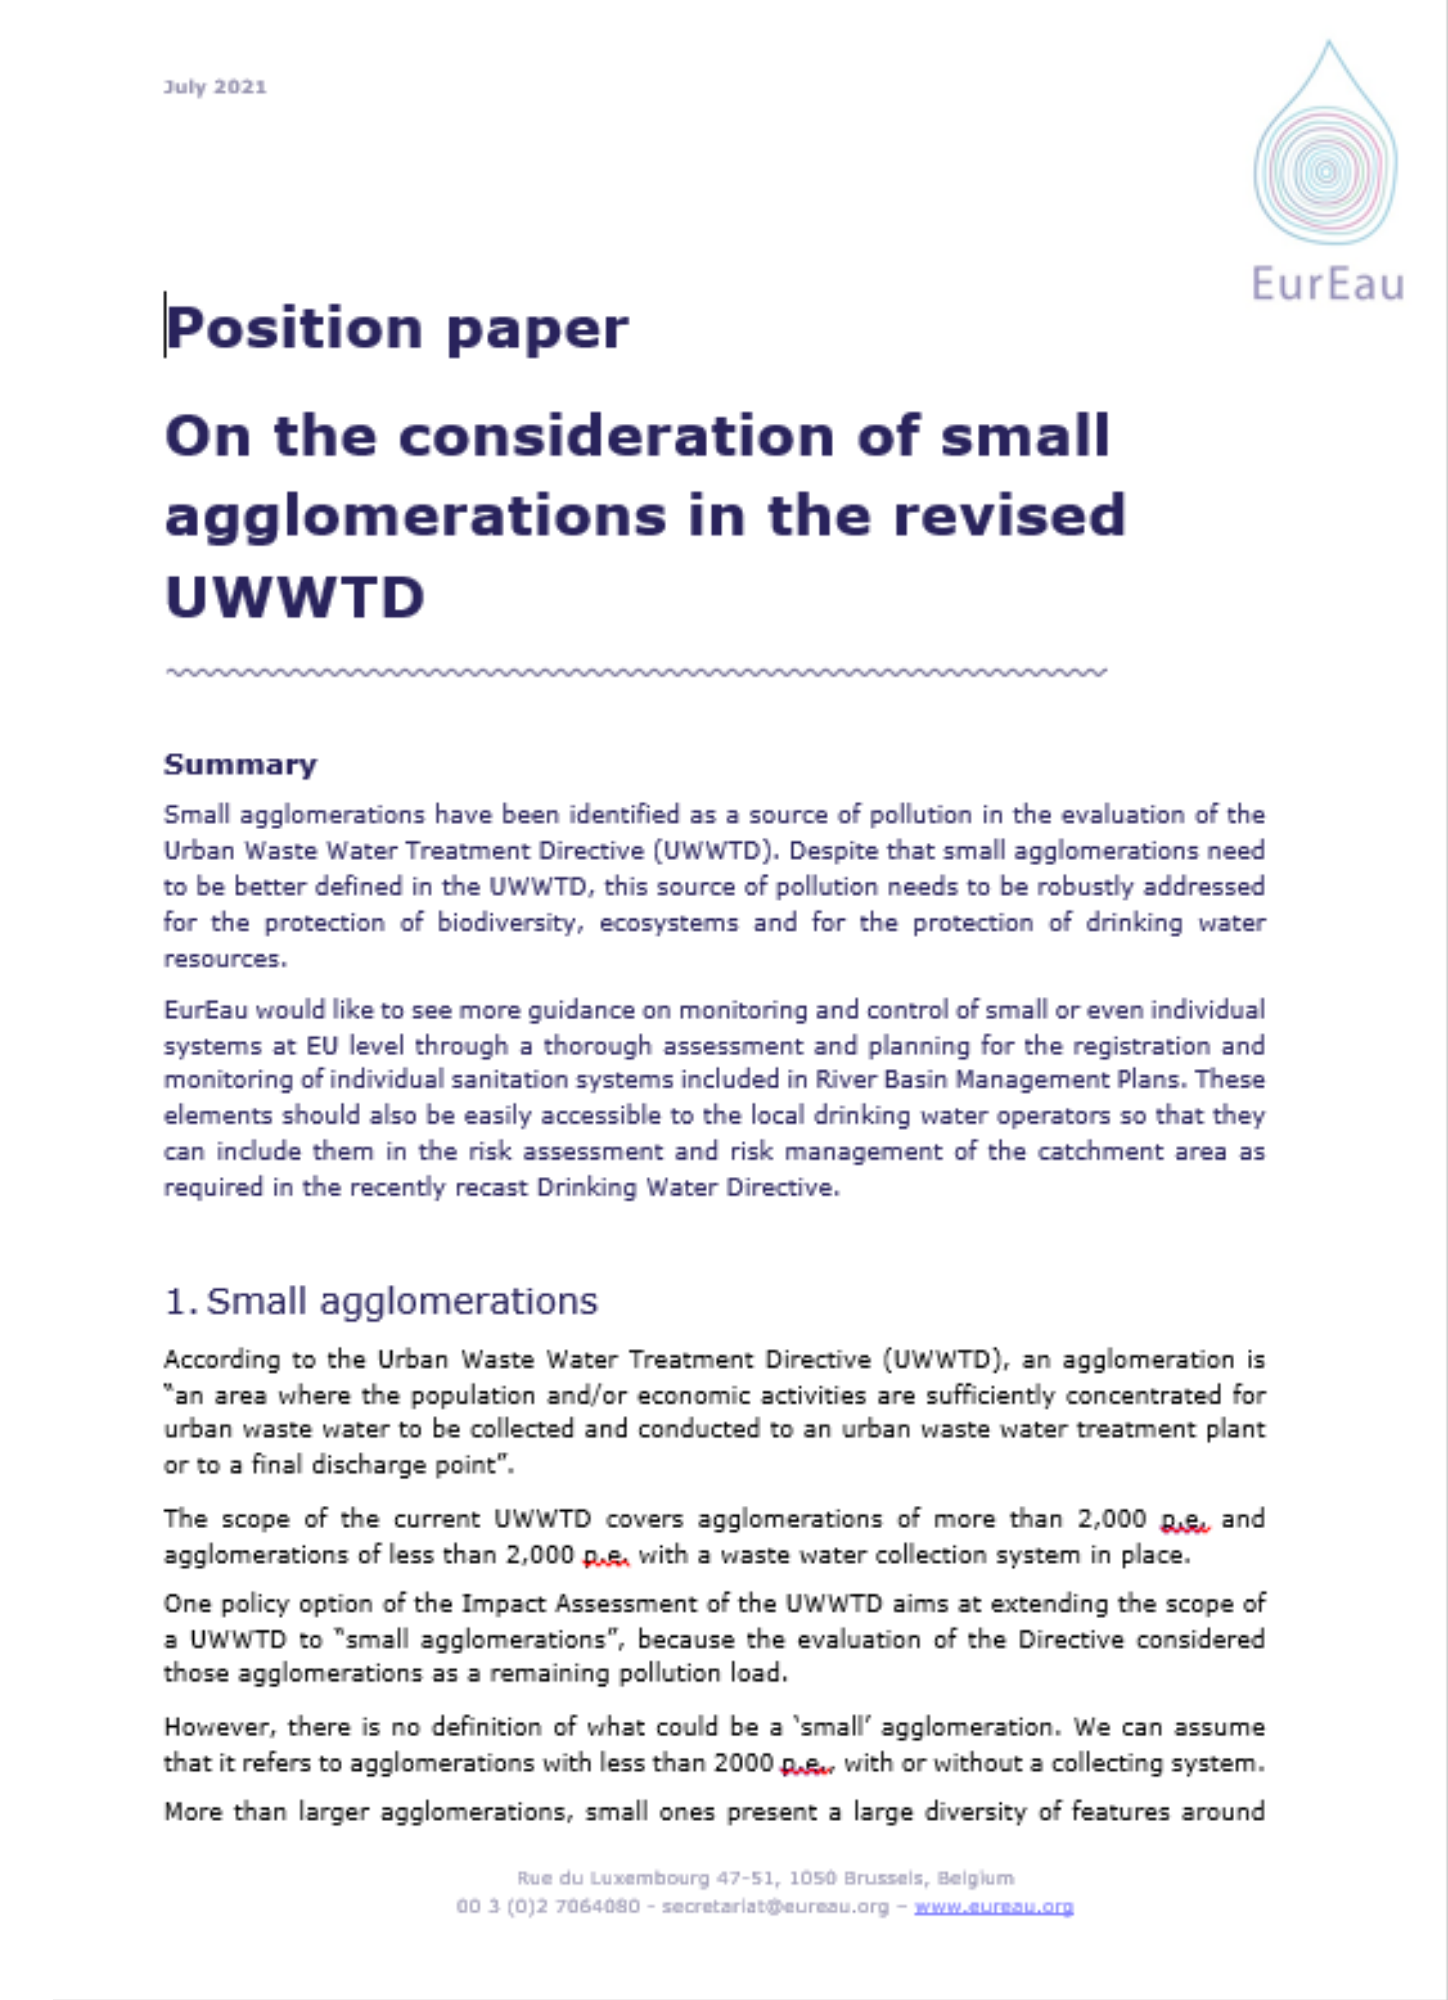 Position paper on the consideration of small agglomerations in the UWWTD